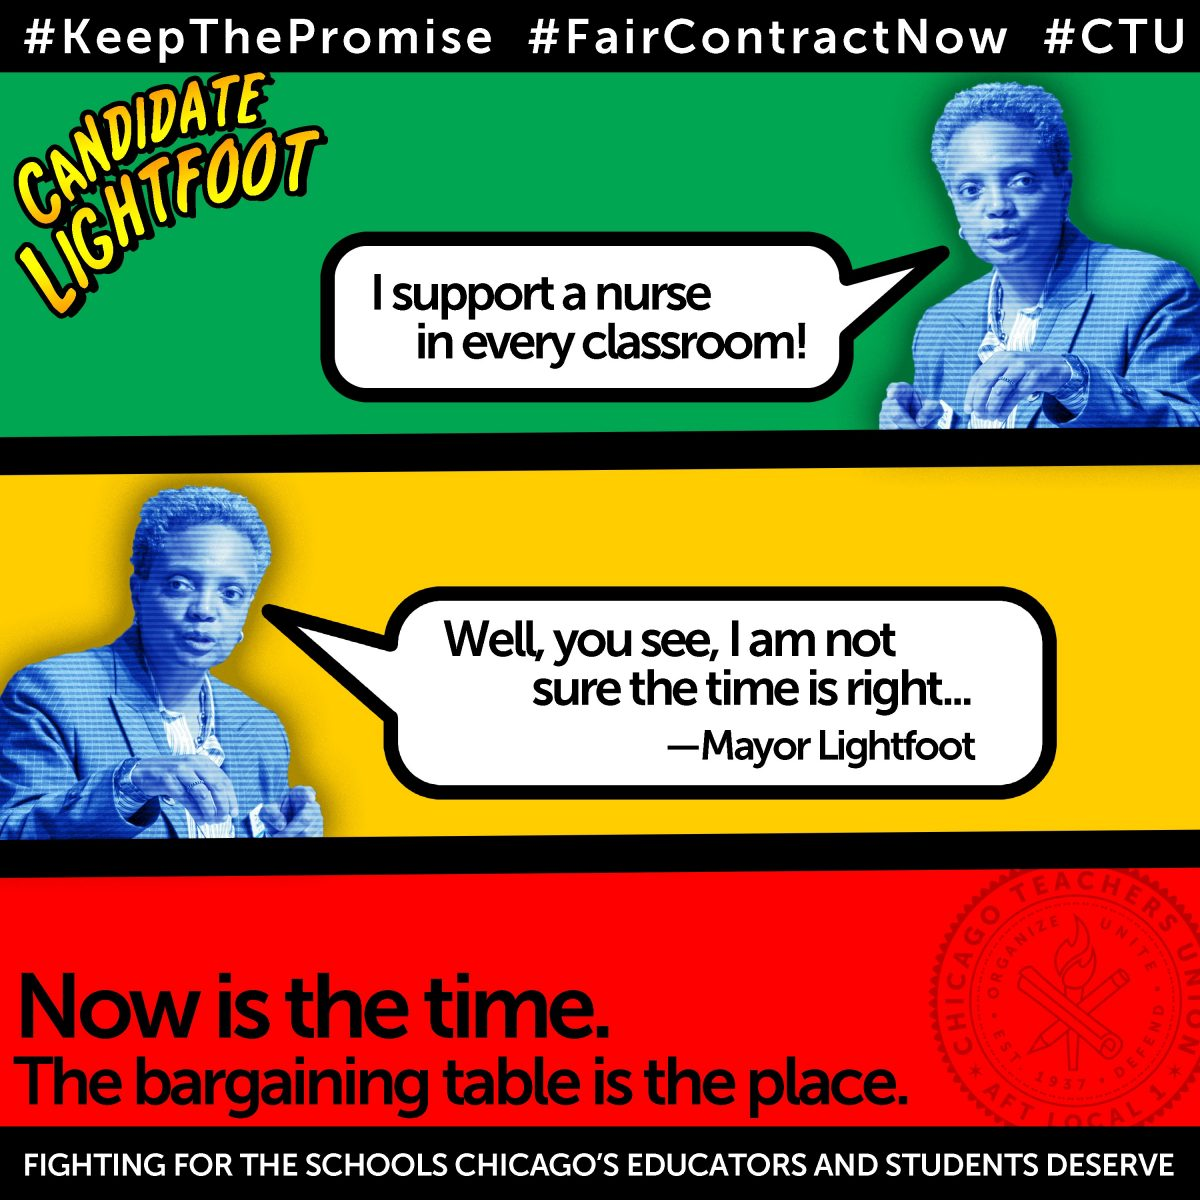 CTU to Lightfoot: Keep your promise and end toxic Rahm agenda in public schools